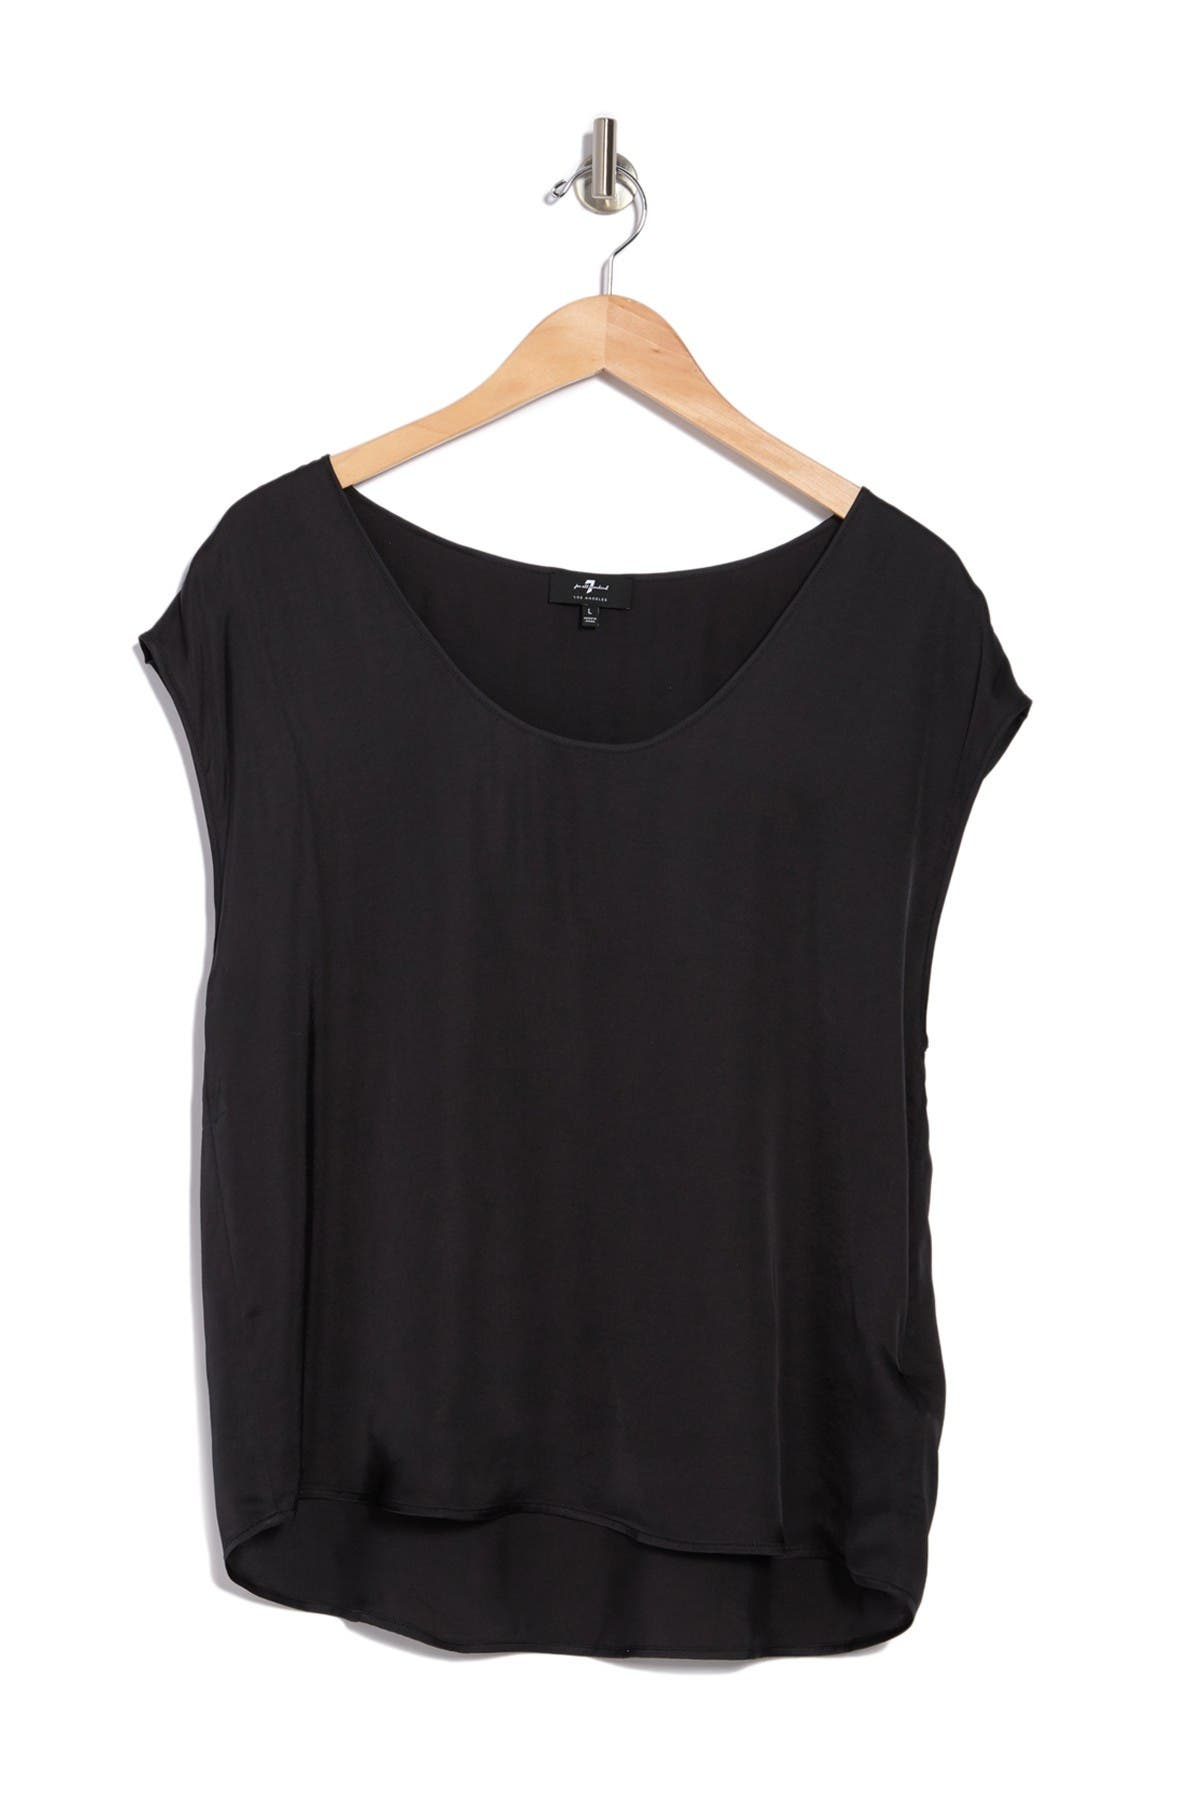 Image of 7 For All Mankind Scoop Neck Tee